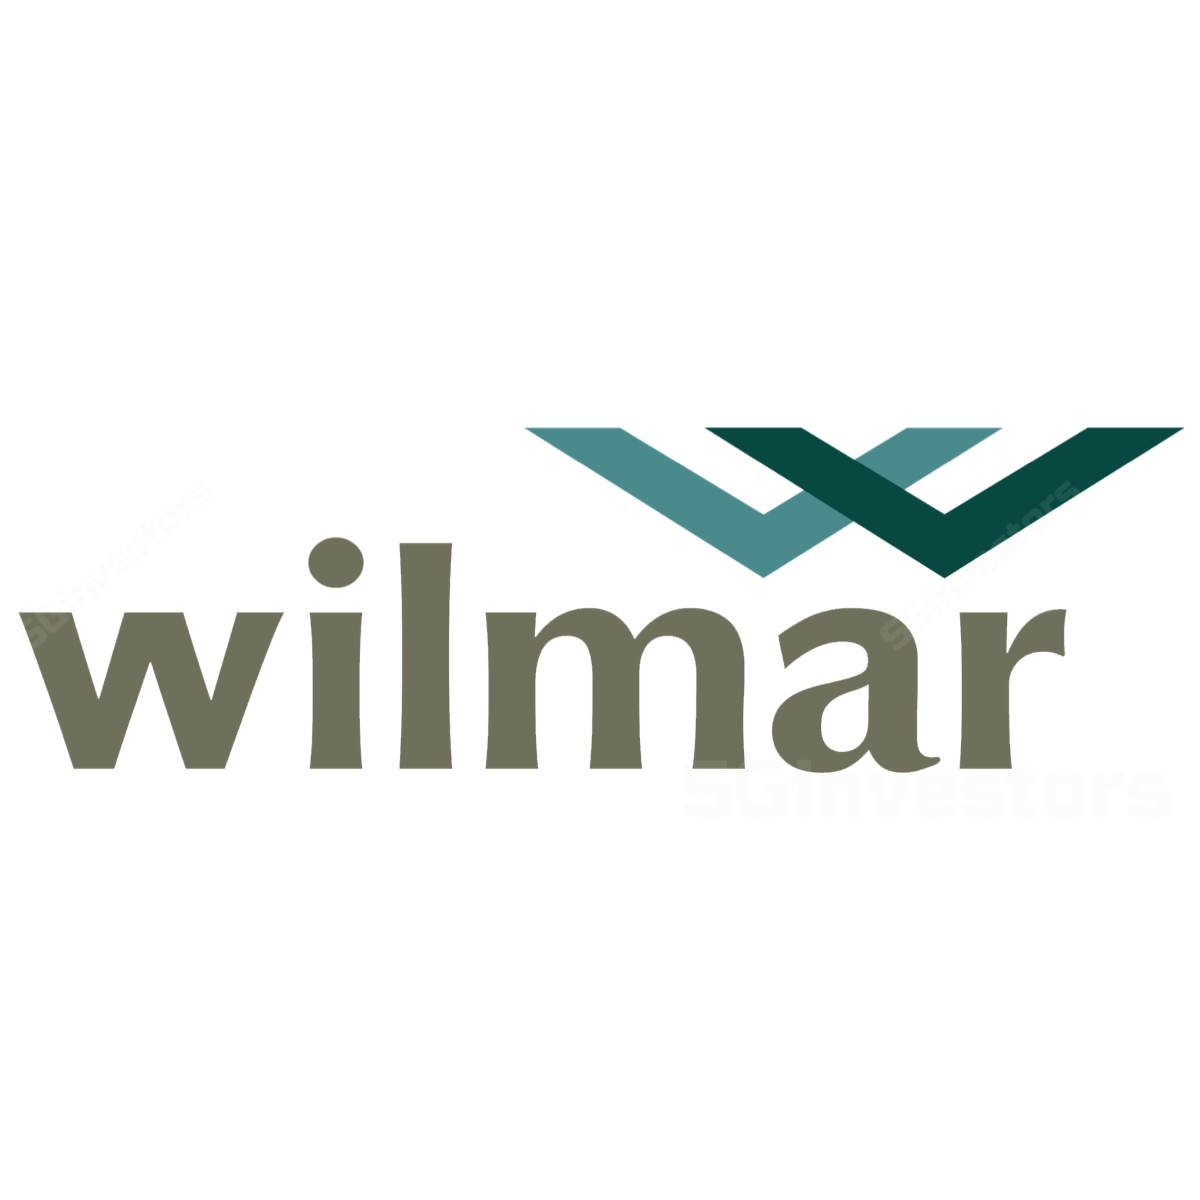 Wilmar International - DBS Vickers 2018-02-23: Trading At Bargain Price After Prolonged Correction